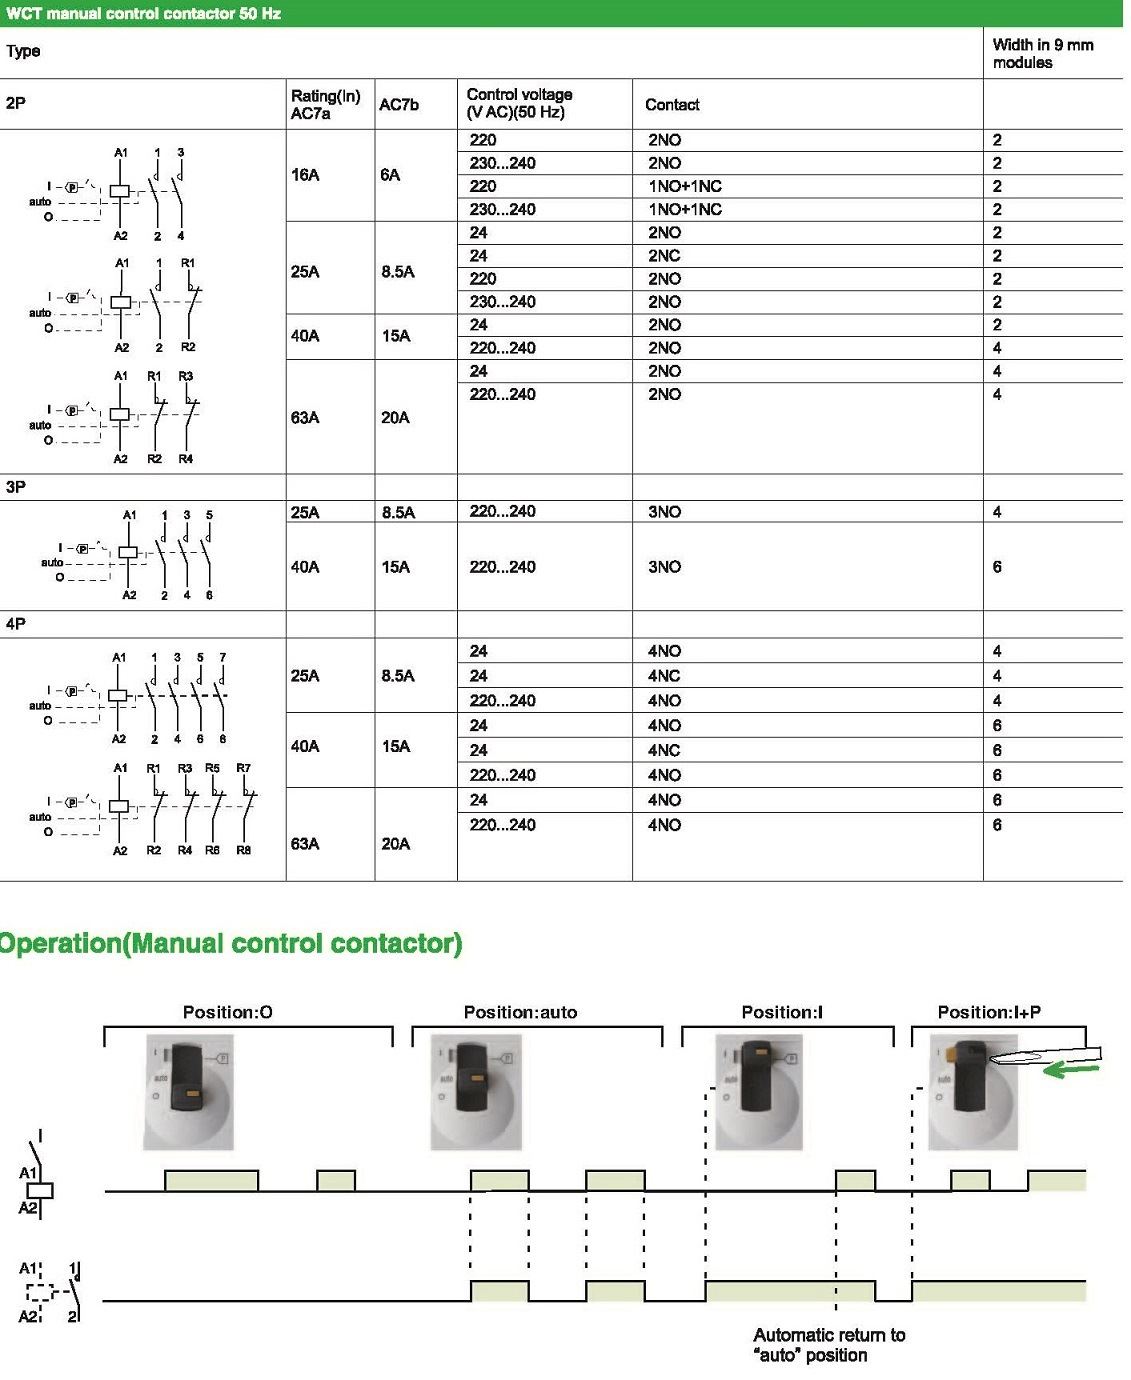 New Wiring Diagram Household Contactor WTC 63A 2P ?resize\\\\\\\=665%2C811 gvd vent damper wiring diagram gandul 45 77 79 119  at webbmarketing.co